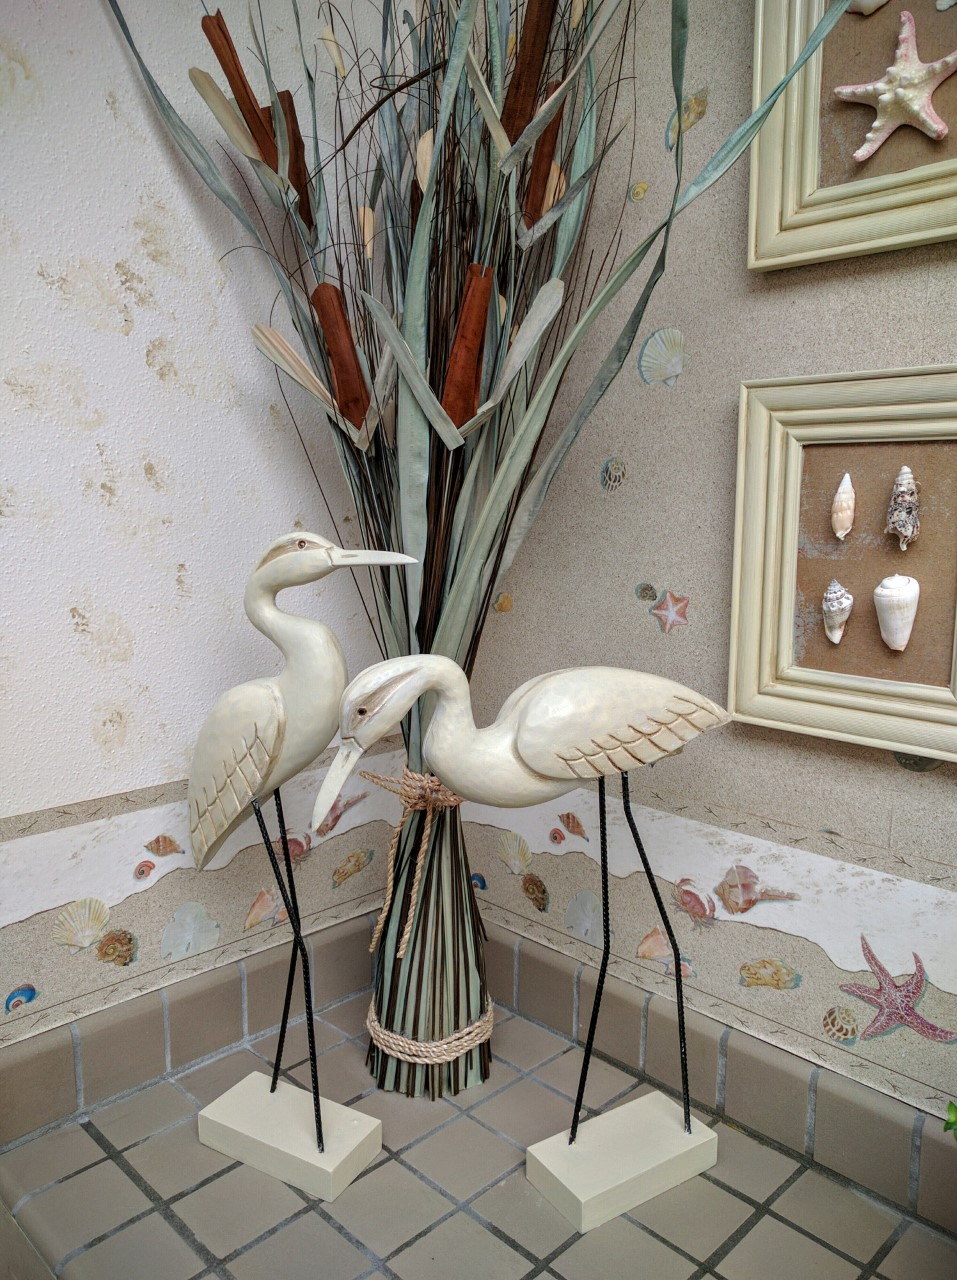 Birds of feather...when I found them, they were featureless and grey. A little bit of paint and stain fixed them right up!